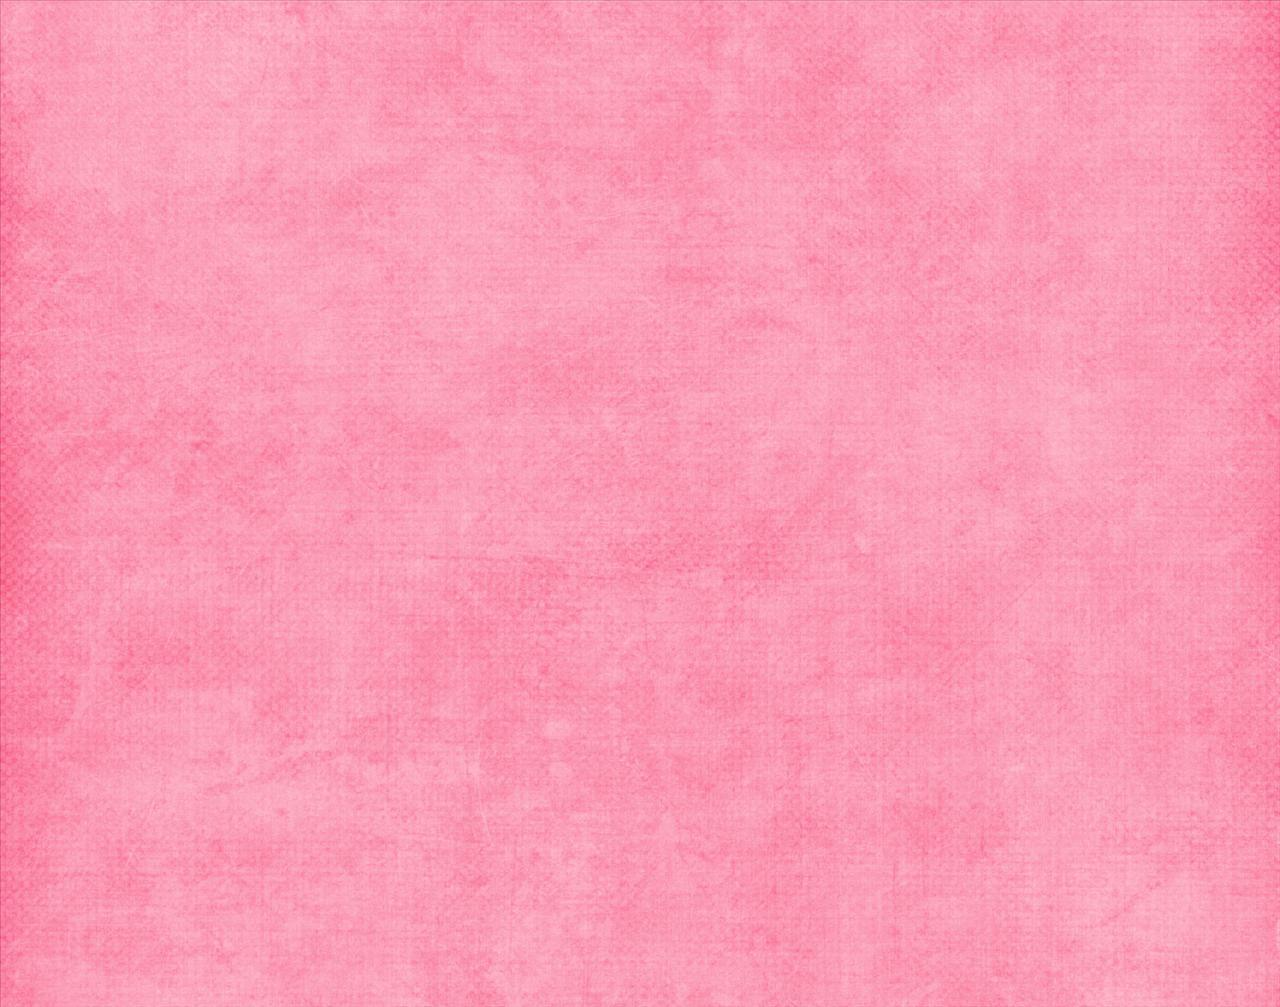 free pink backgrounds wallpaper cave